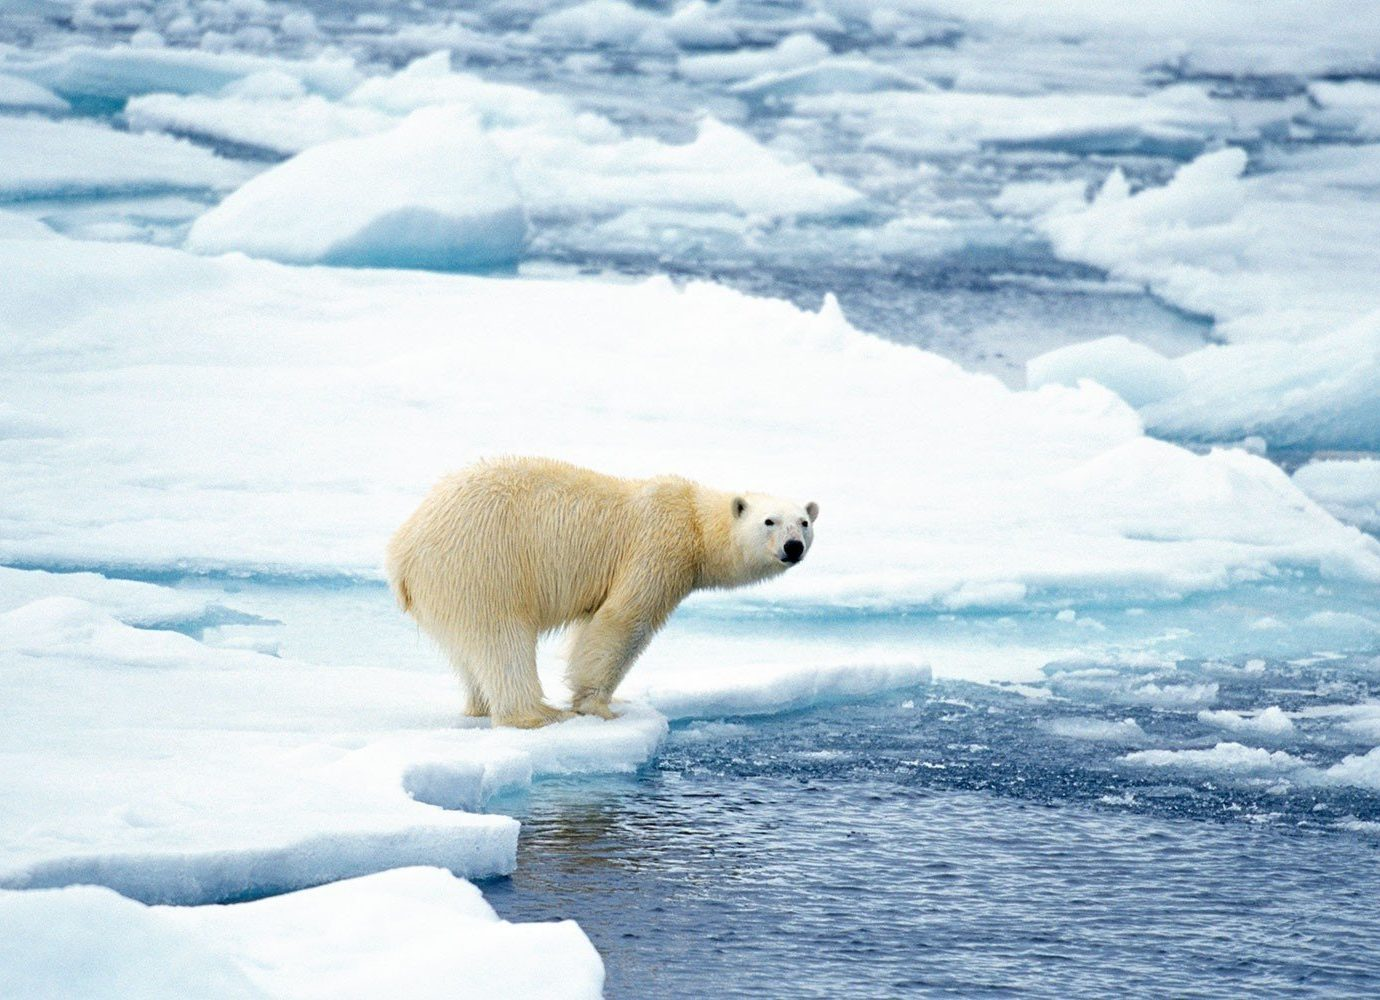 Cruise Travel Trip Ideas snow outdoor polar water arctic bear mammal animal vertebrate natural environment arctic ocean polar bear tundra ice Nature ice cap